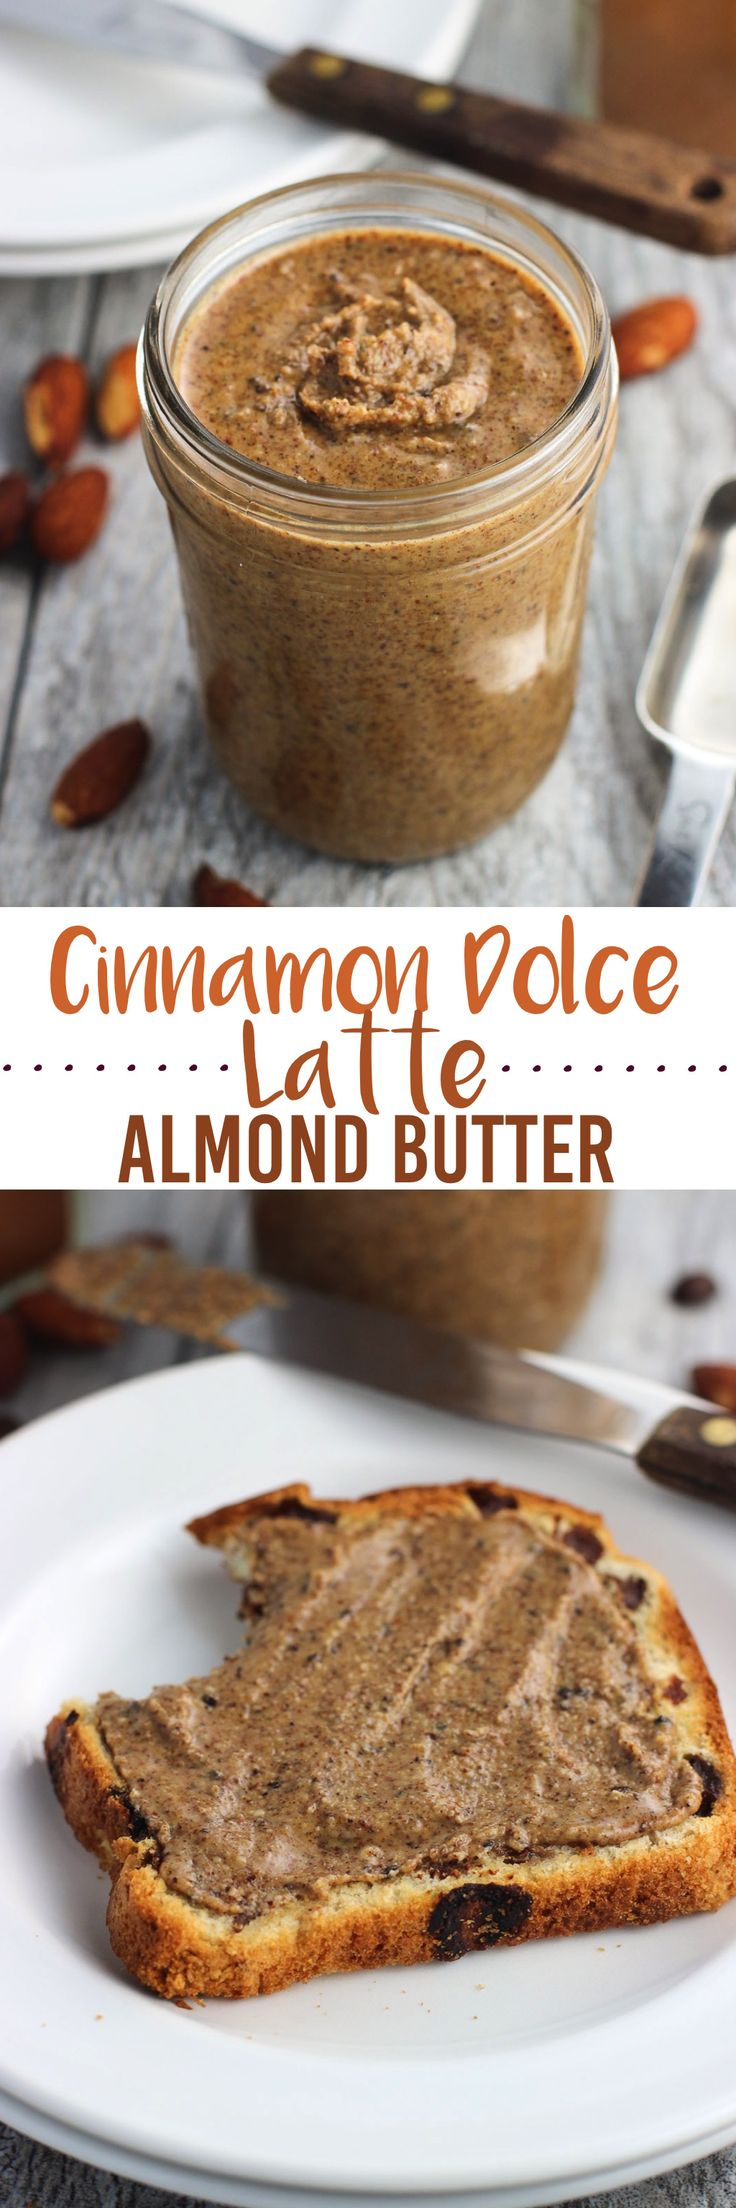 Homemade almond butter is jazzed up with the flavors of a Starbucks Cinnamon Dolce Latte! Roasted almonds are blended with cinnamon, nutmeg, brown sugar, vanilla extract, and whole espresso beans for a quick and easy spread just perfect for breakfast or snacking.